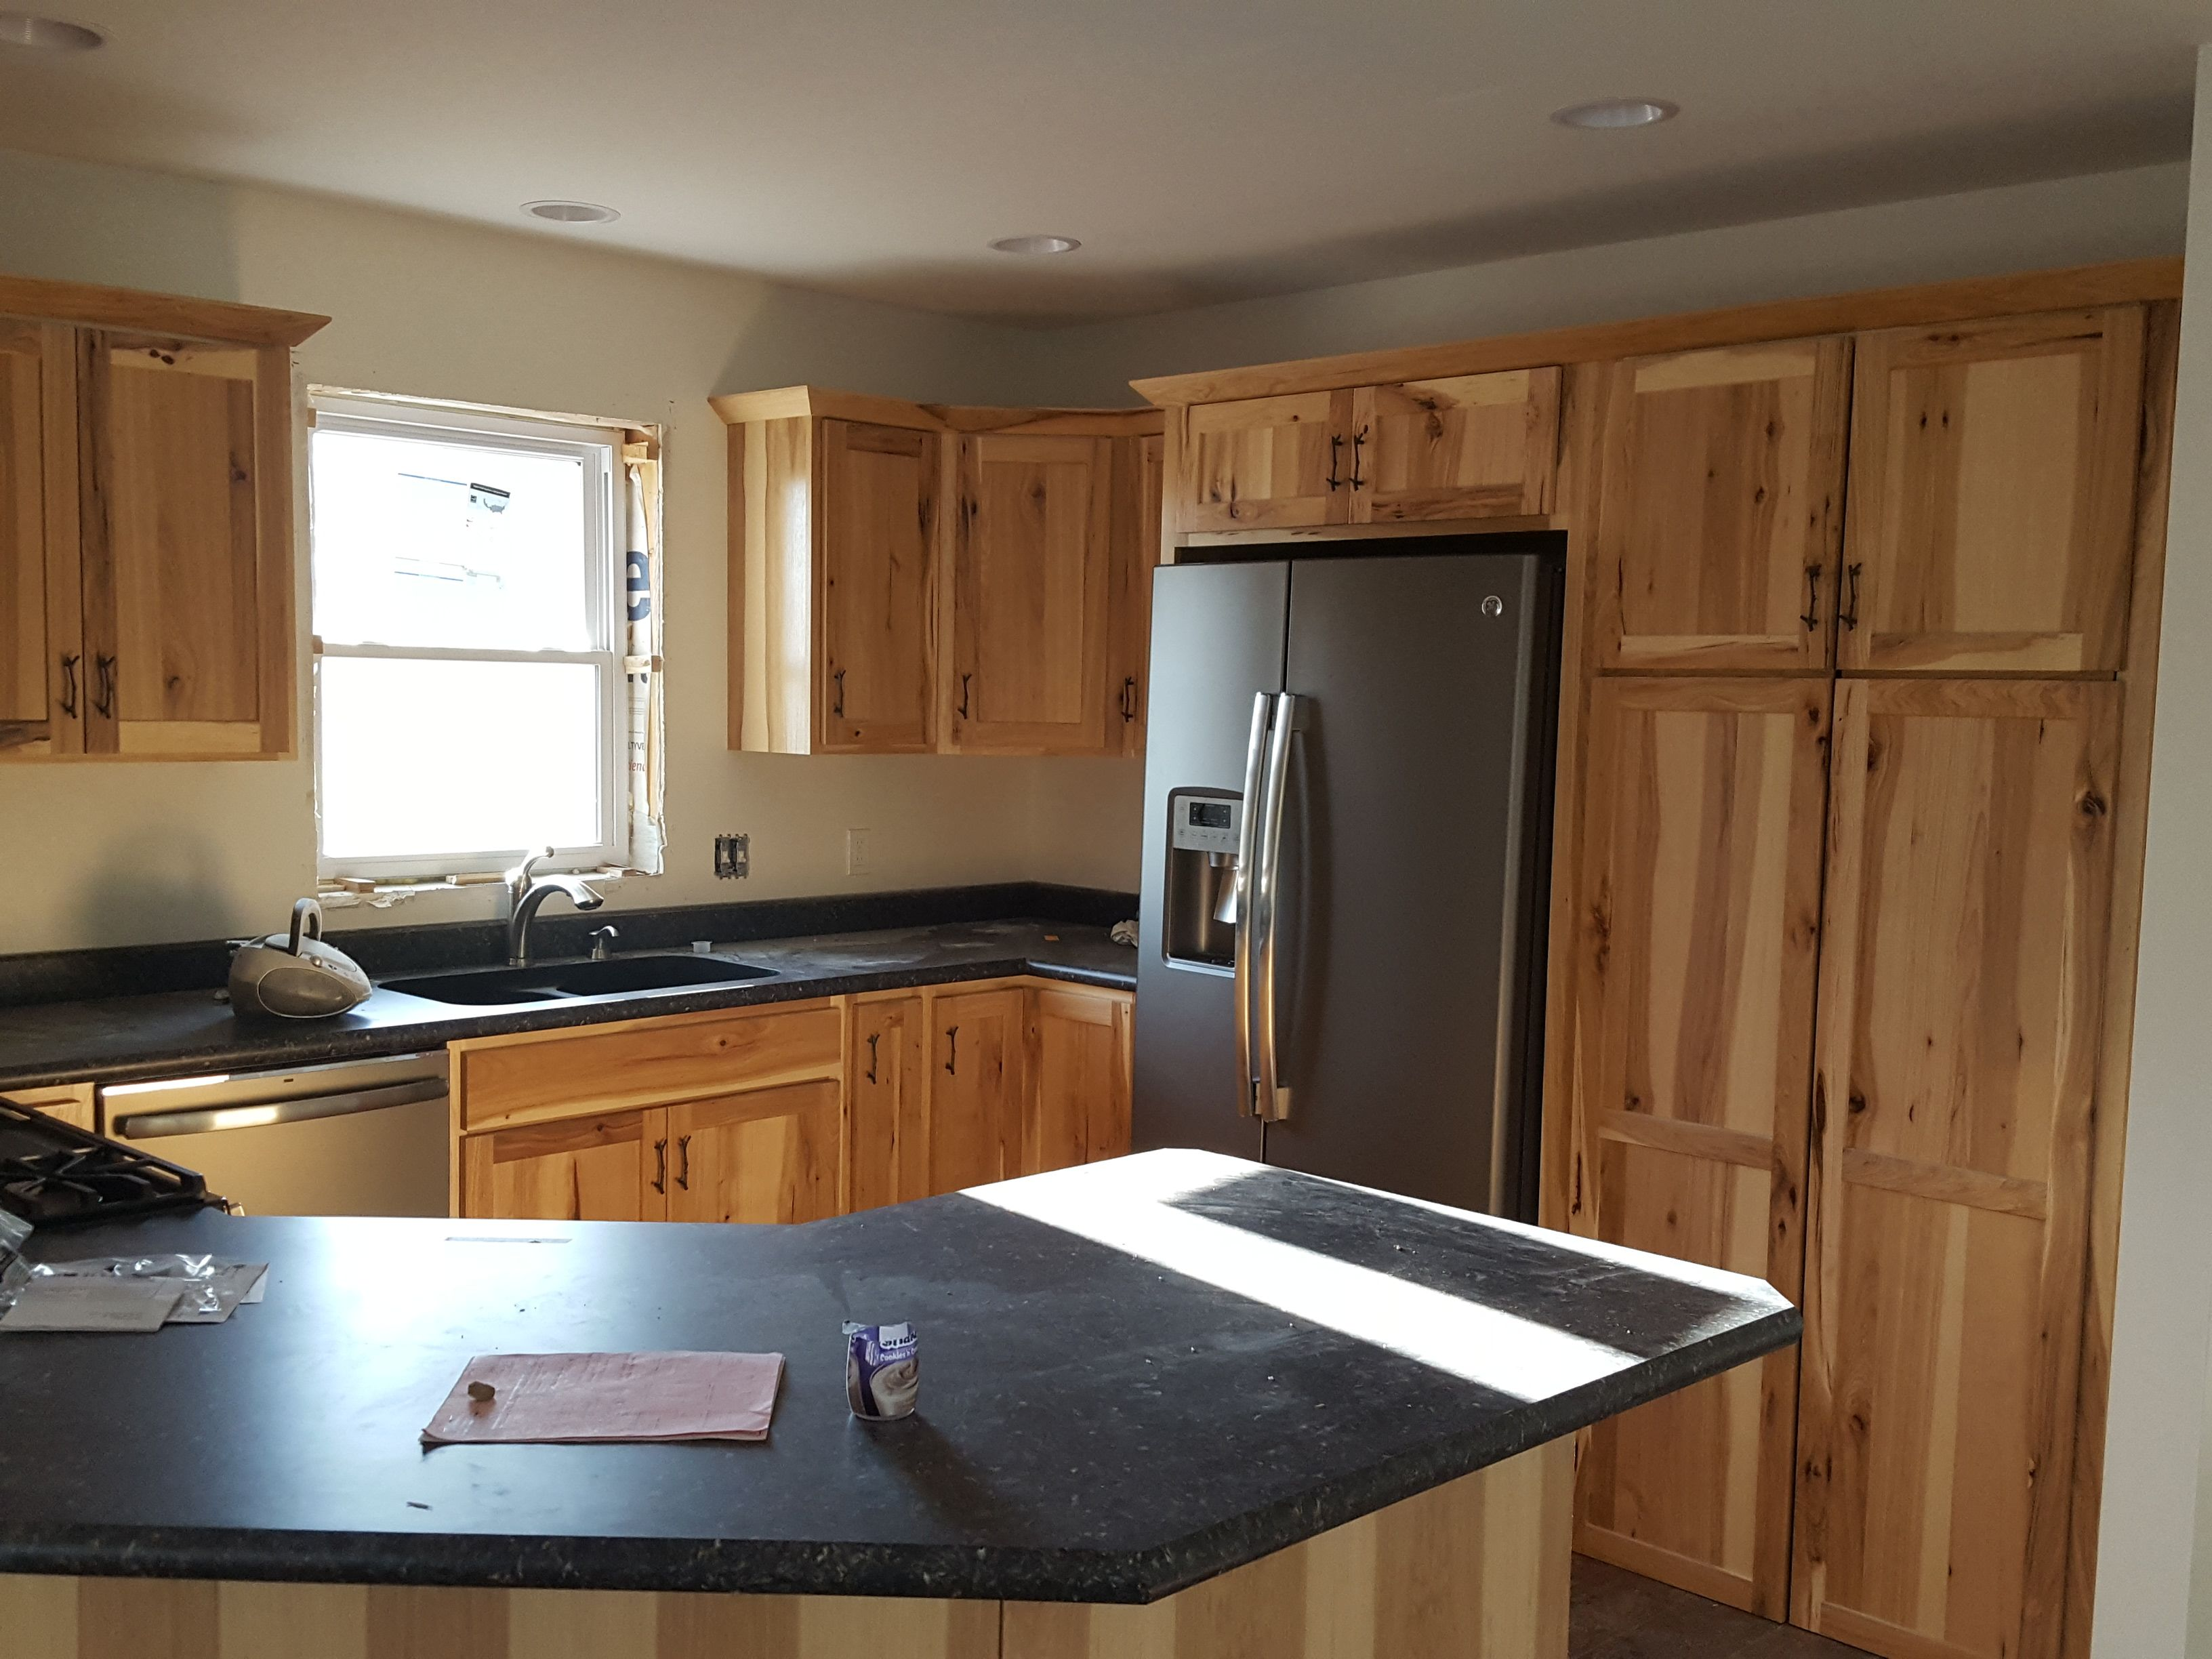 rustic black kitchen cabinets beautiful islands hickory laminate countertops ge